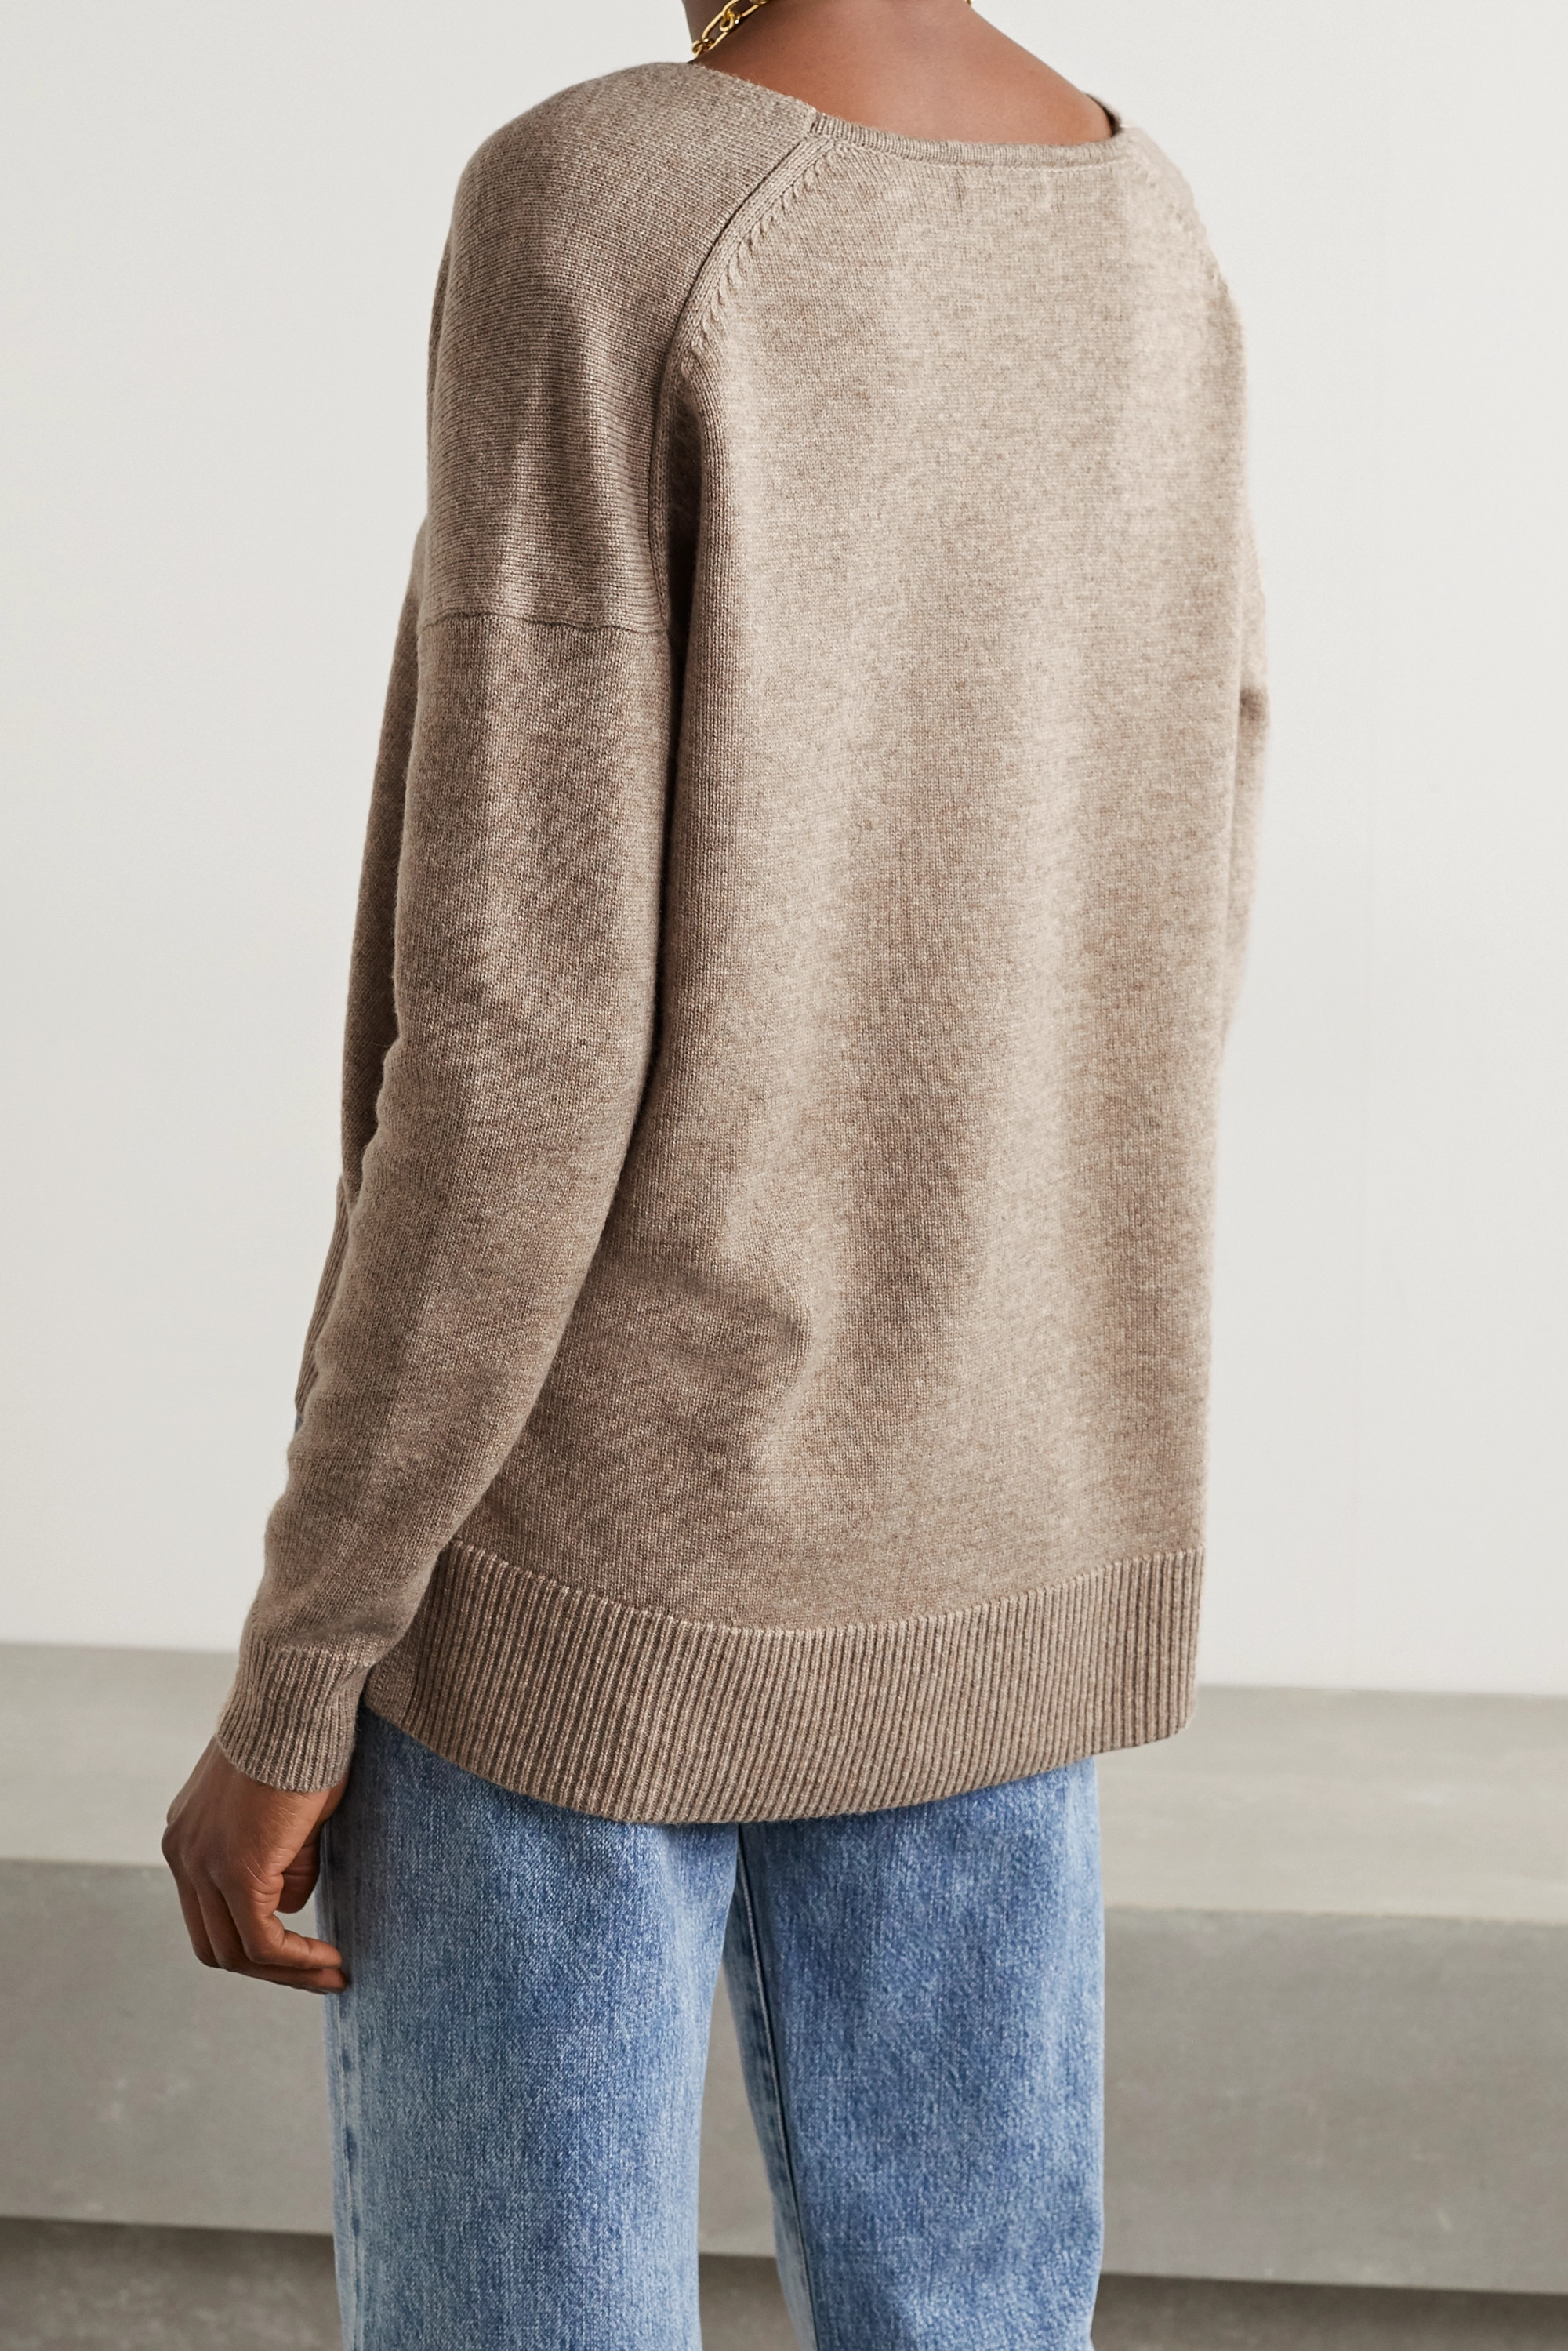 Co Wool and cashmere-blend sweater